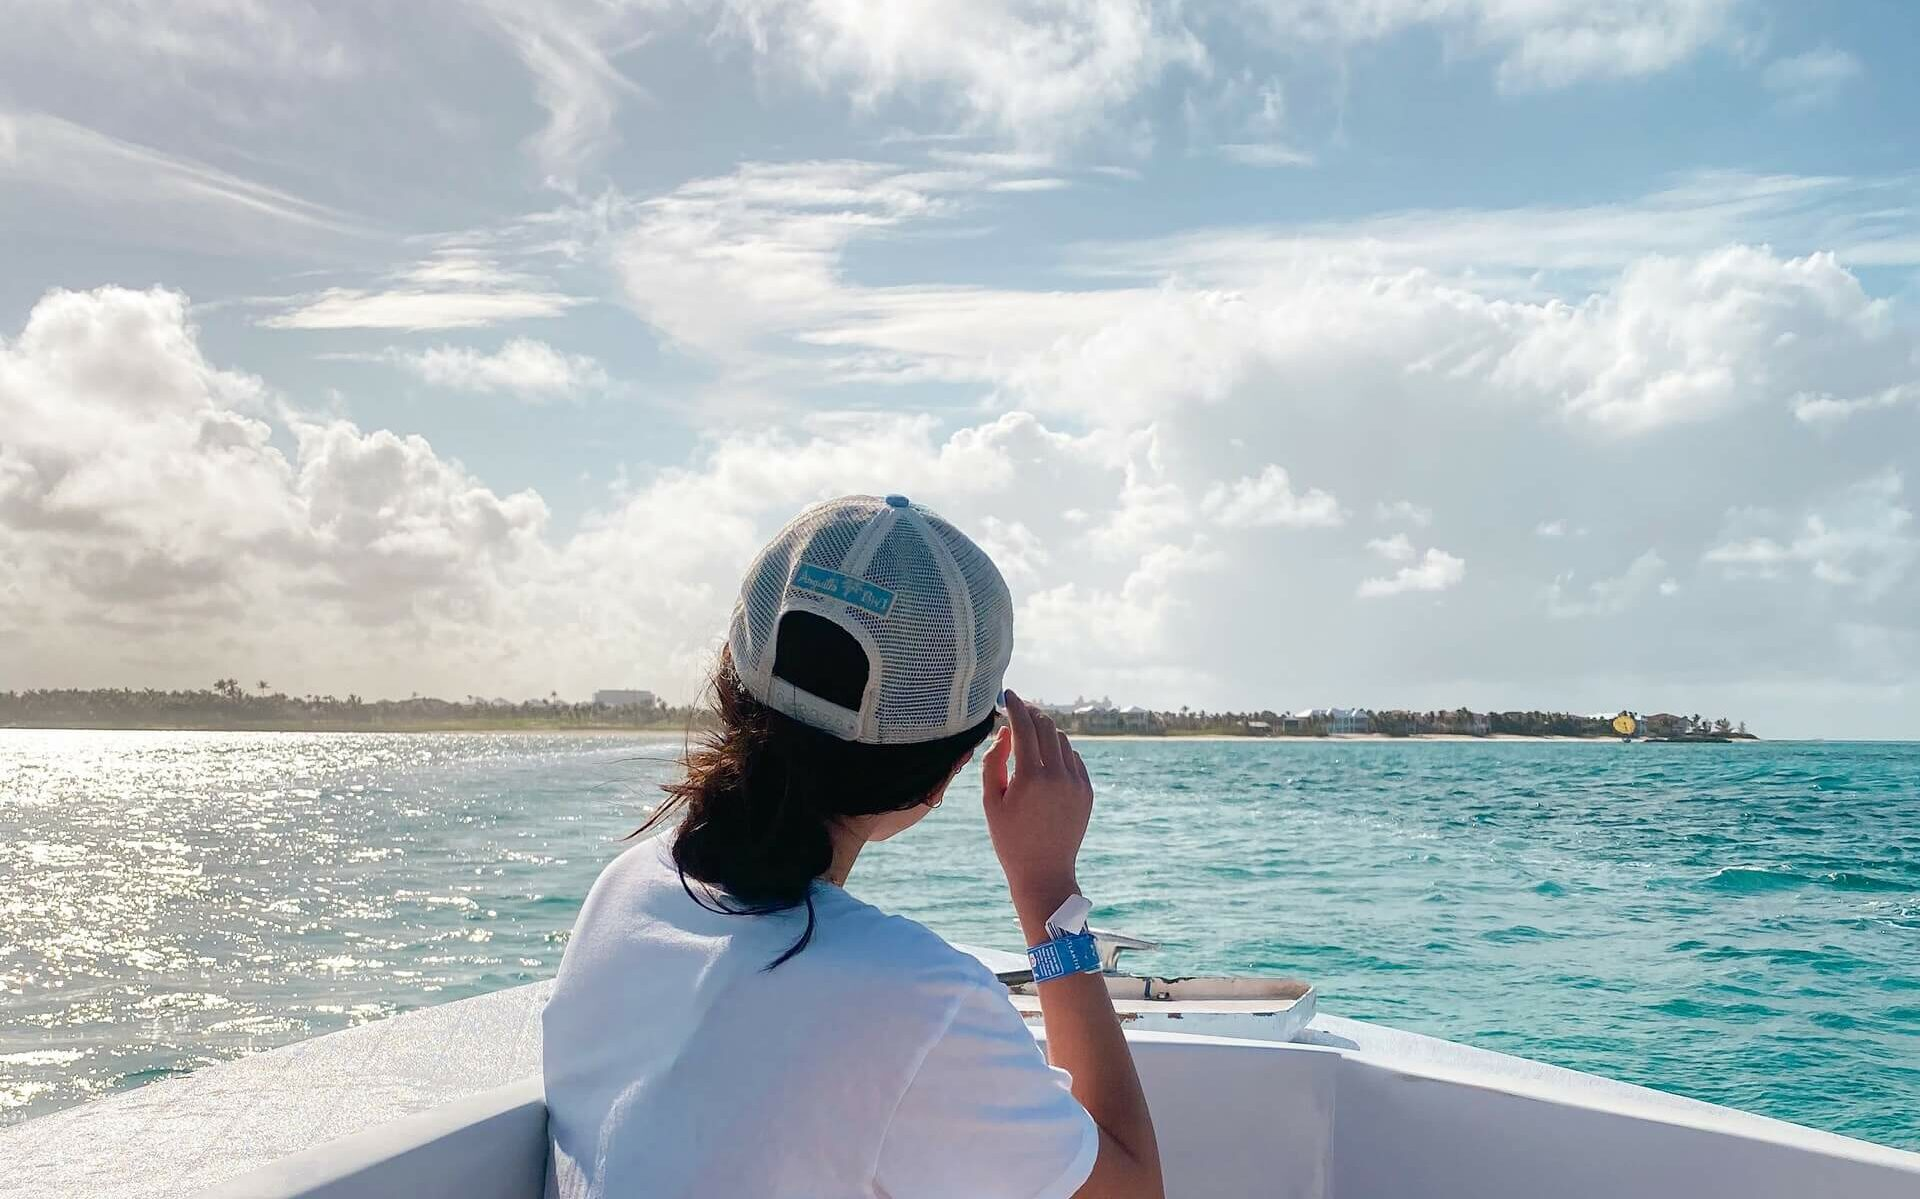 A woman in a hat looking at an island from a boat in the Bahamas